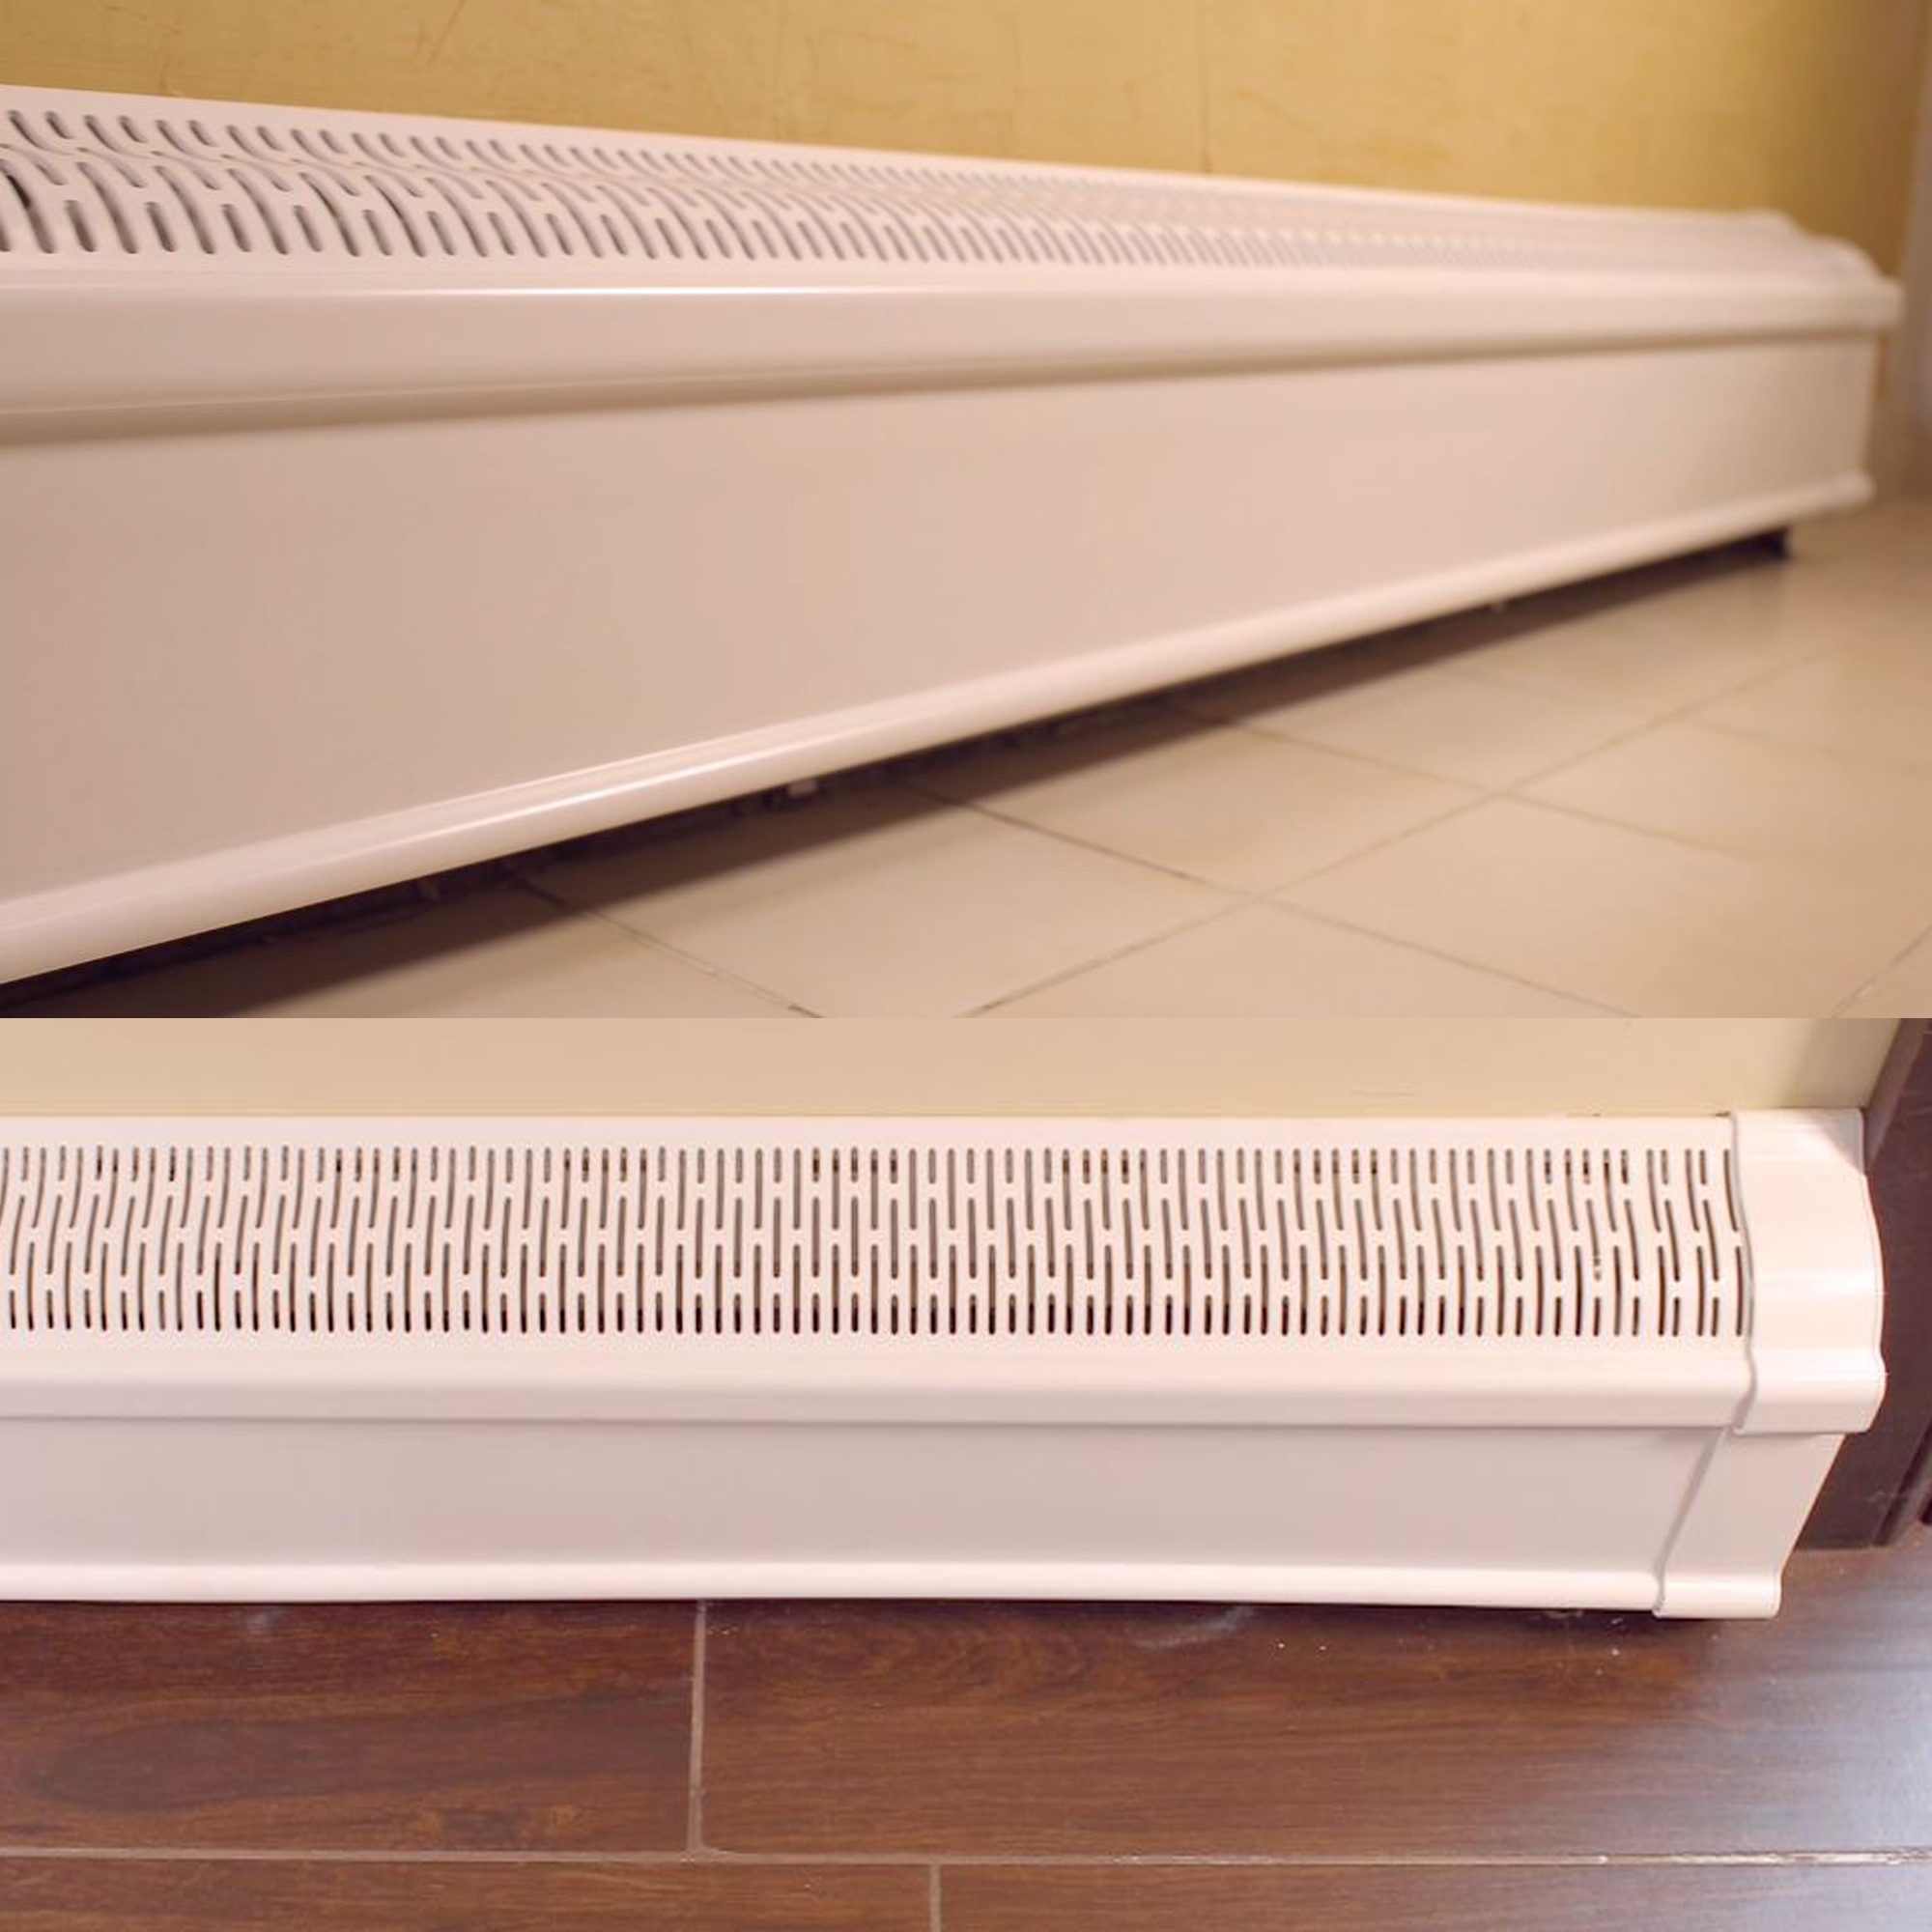 Baseboard Heat Covers COMPLETE SET - 2 Feet White - INCLUDES Right and Left End Caps | Hot Water, Hydronic Heater Baseboard Cover Enclosure Replacement Kit for Home - Rust-Proof Plastic